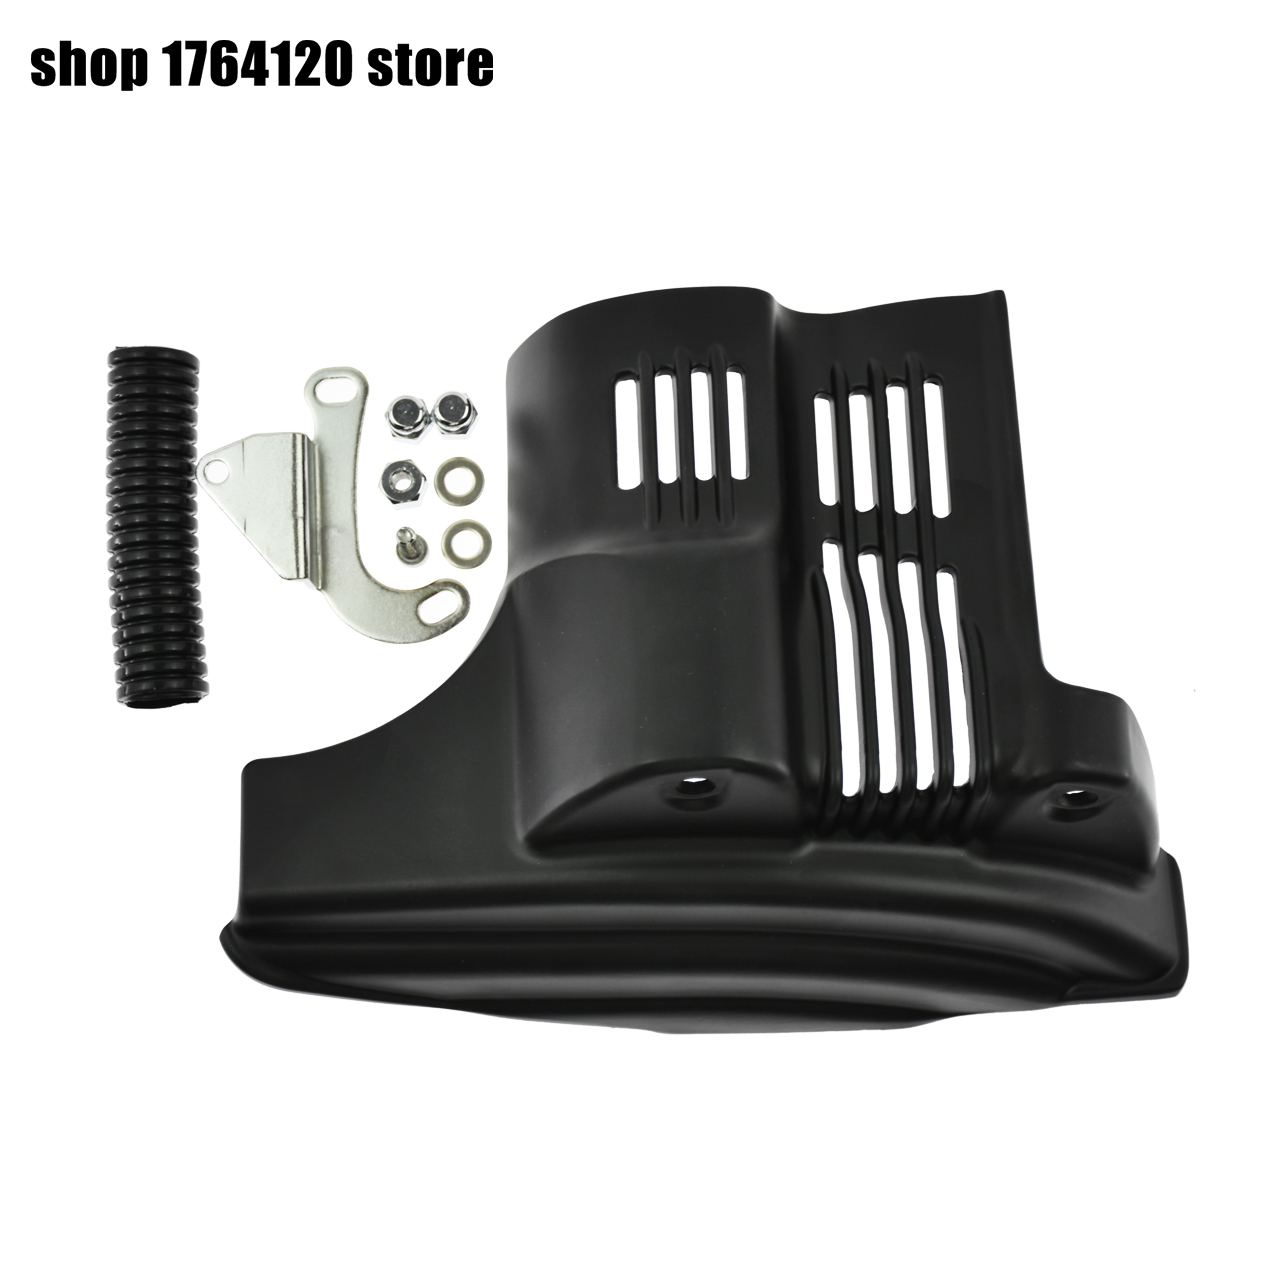 Motorcycle Black Starter Cover For Harley Sportster <font><b>Iron</b></font> <font><b>883</b></font> XL883N 2009-2018 Seventy Two XL1200V 2012-2016 Models image